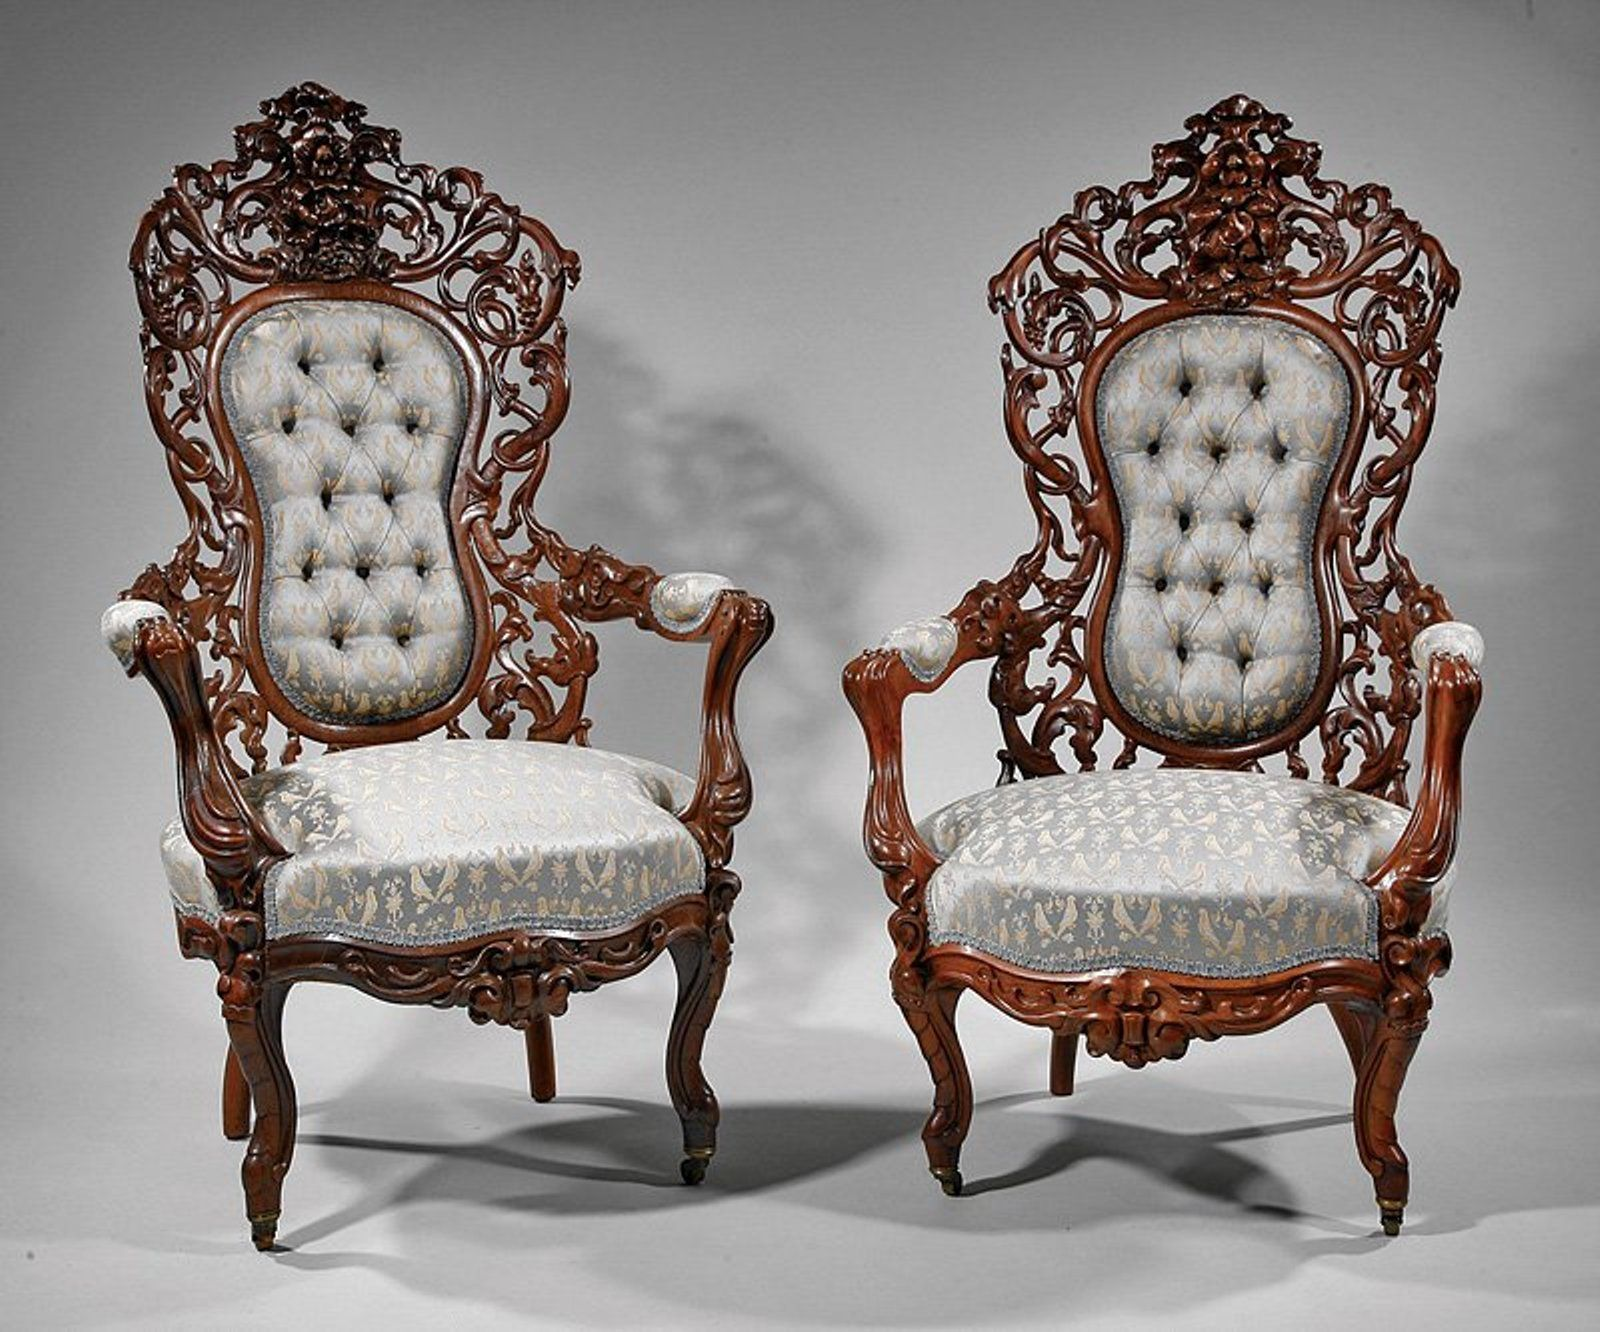 Carved and Laminated Rosewood Parlor Suite liveauctioneers